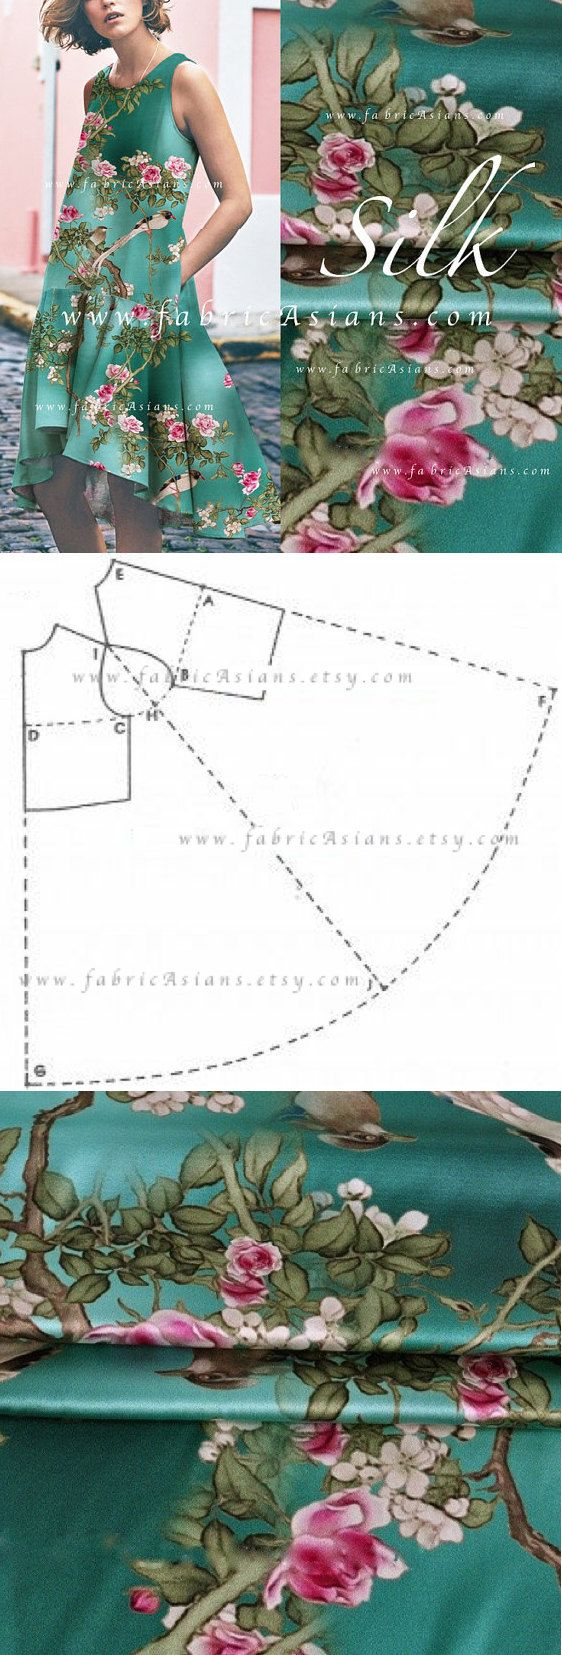 How to sew umbrella dress Easy DIY Dress pattern Free PDF